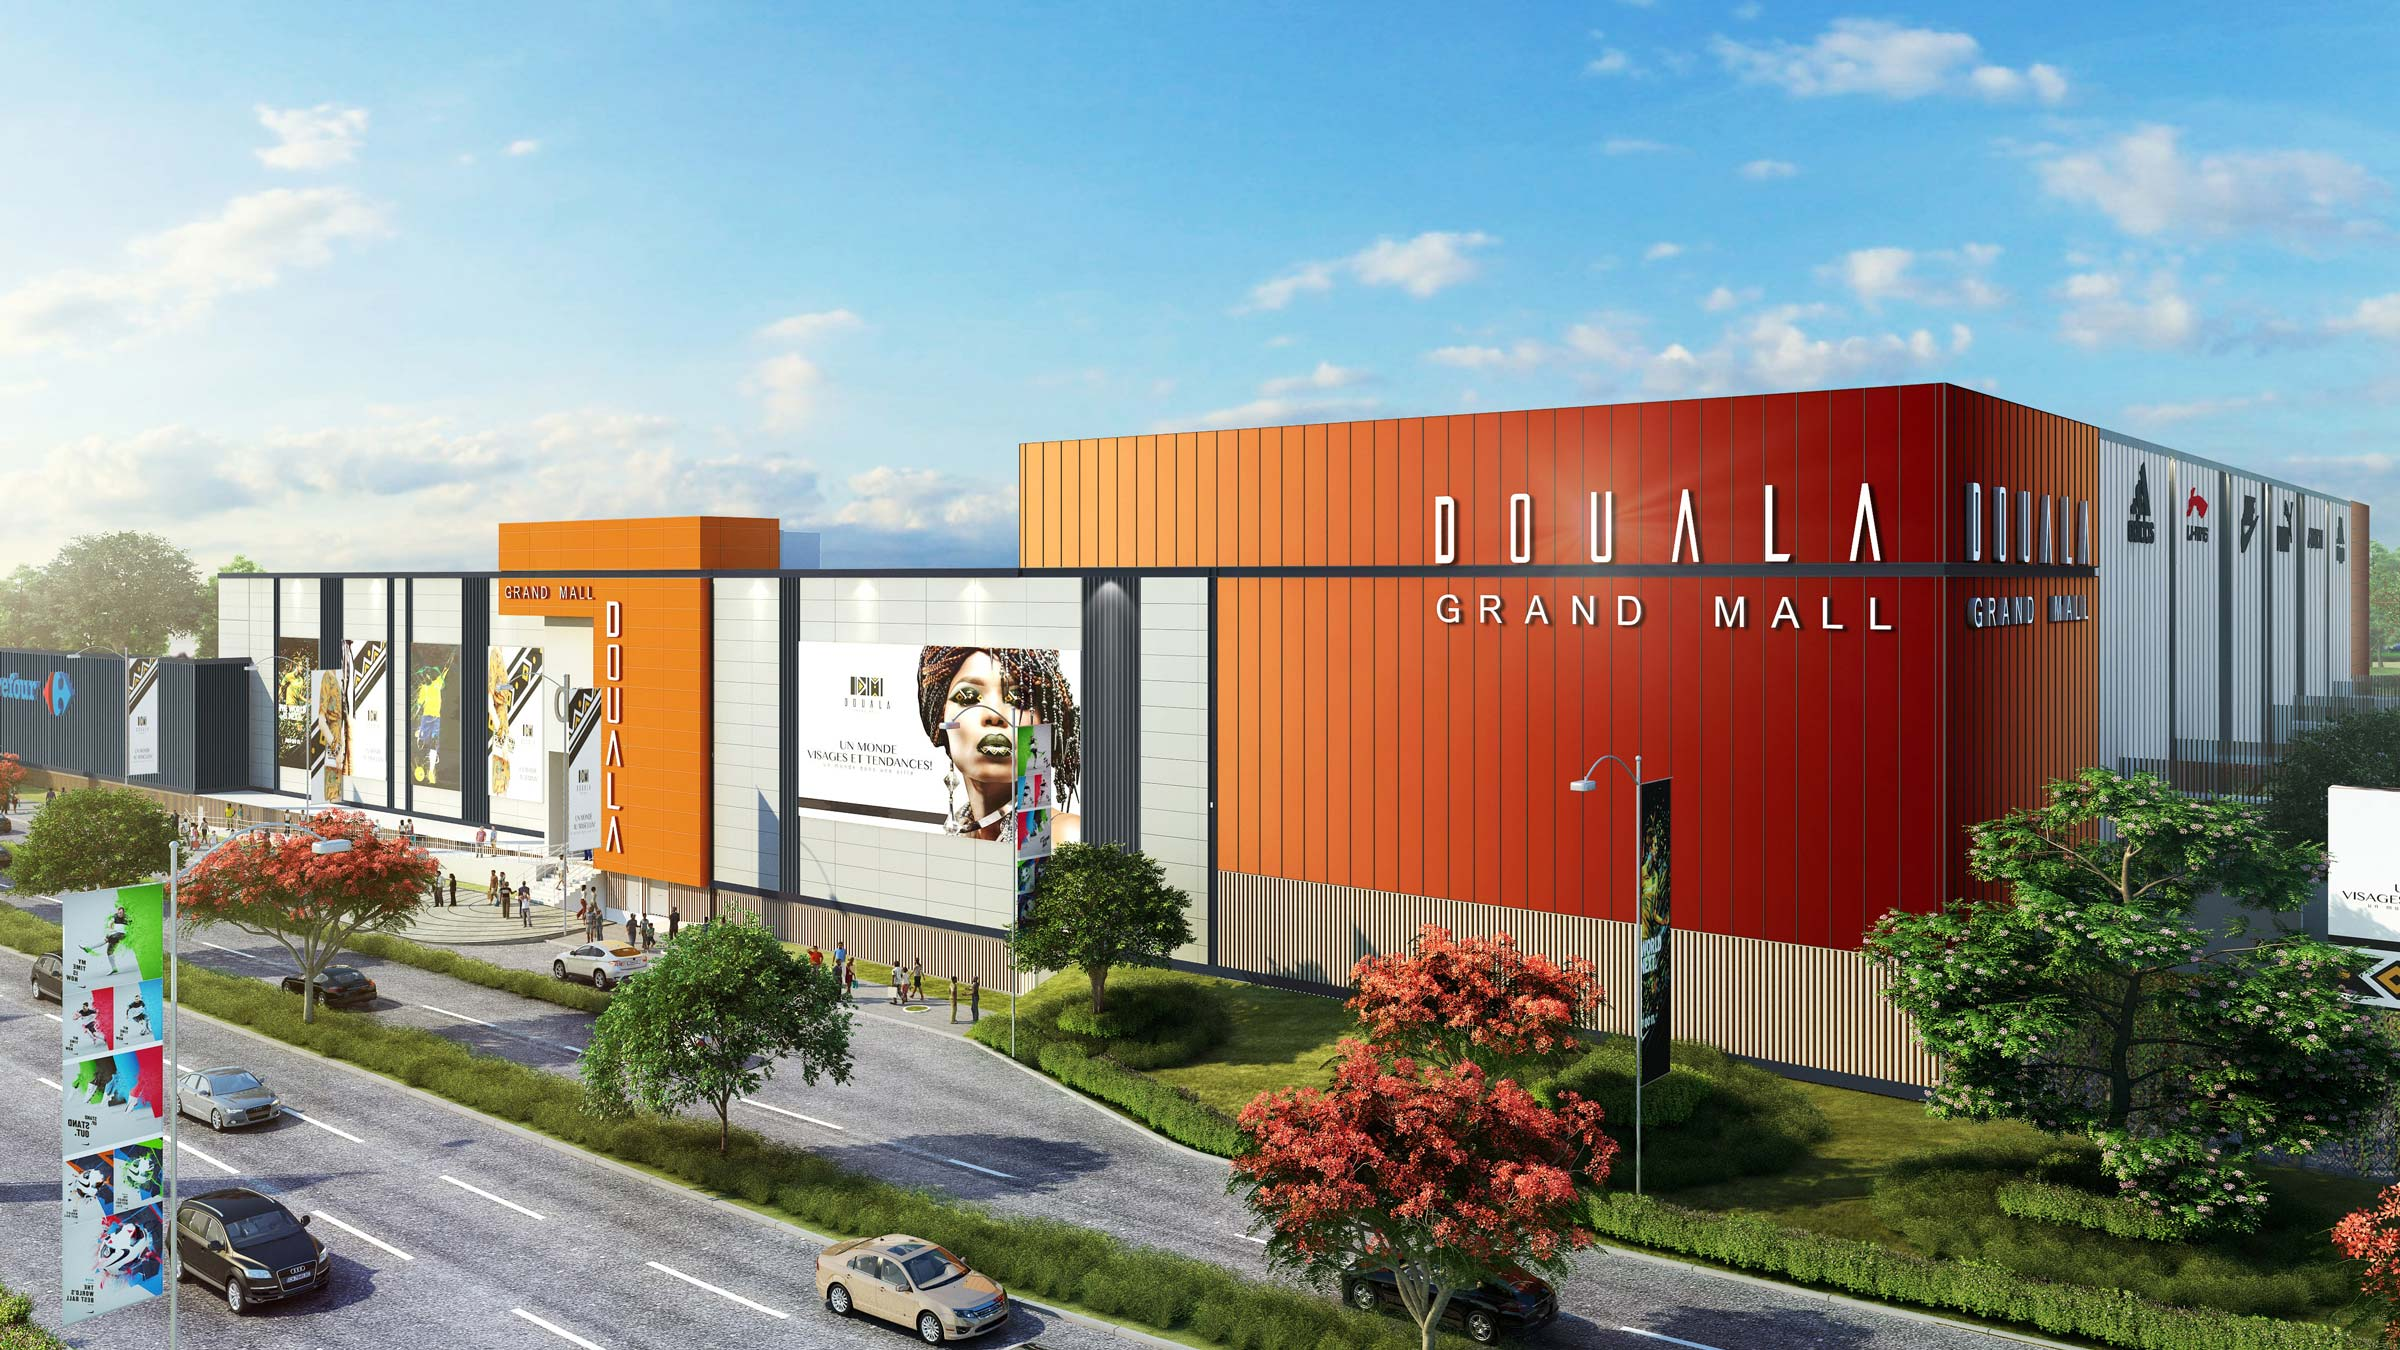 Douala-Grand-Mall-External-min1.jpg